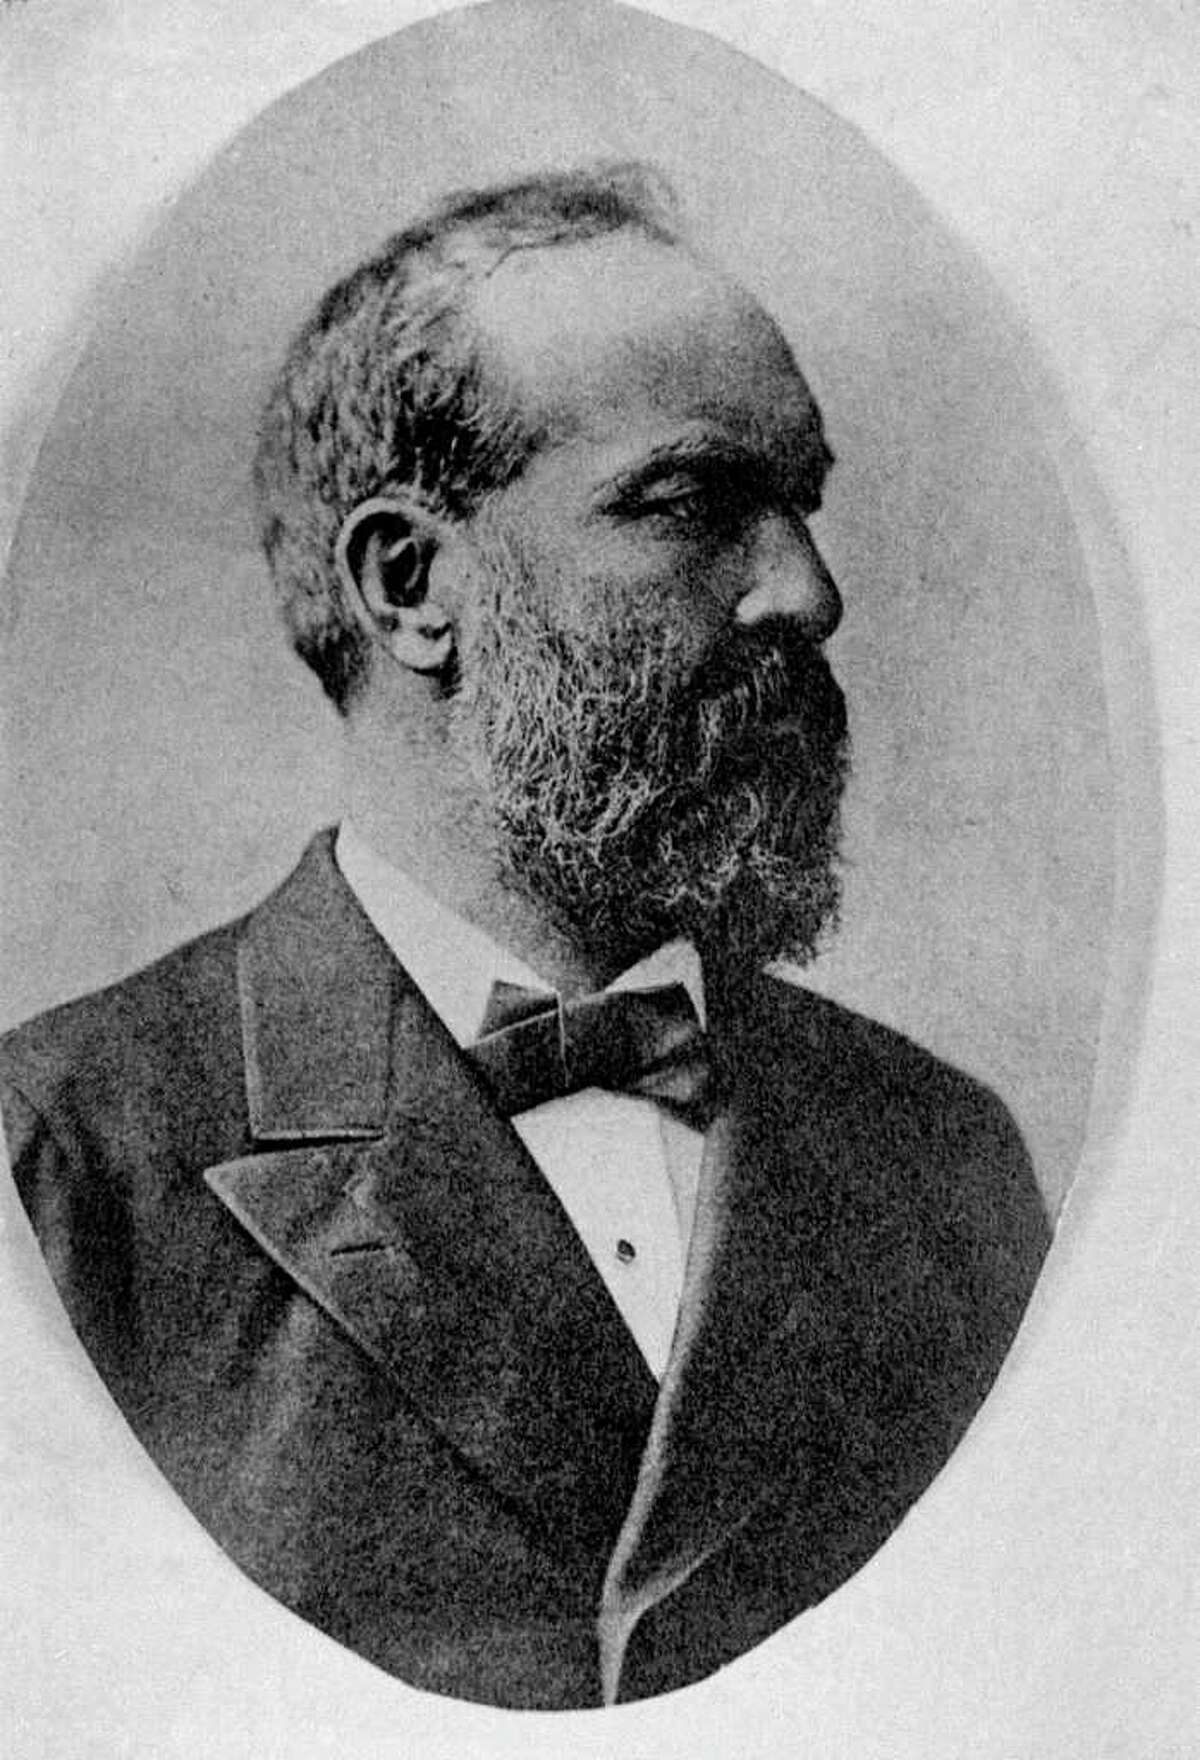 James A. Garfield Garfield made the nomination speech at the 1880 Republican National Convention for John Sherman. The party chose Garfield instead.